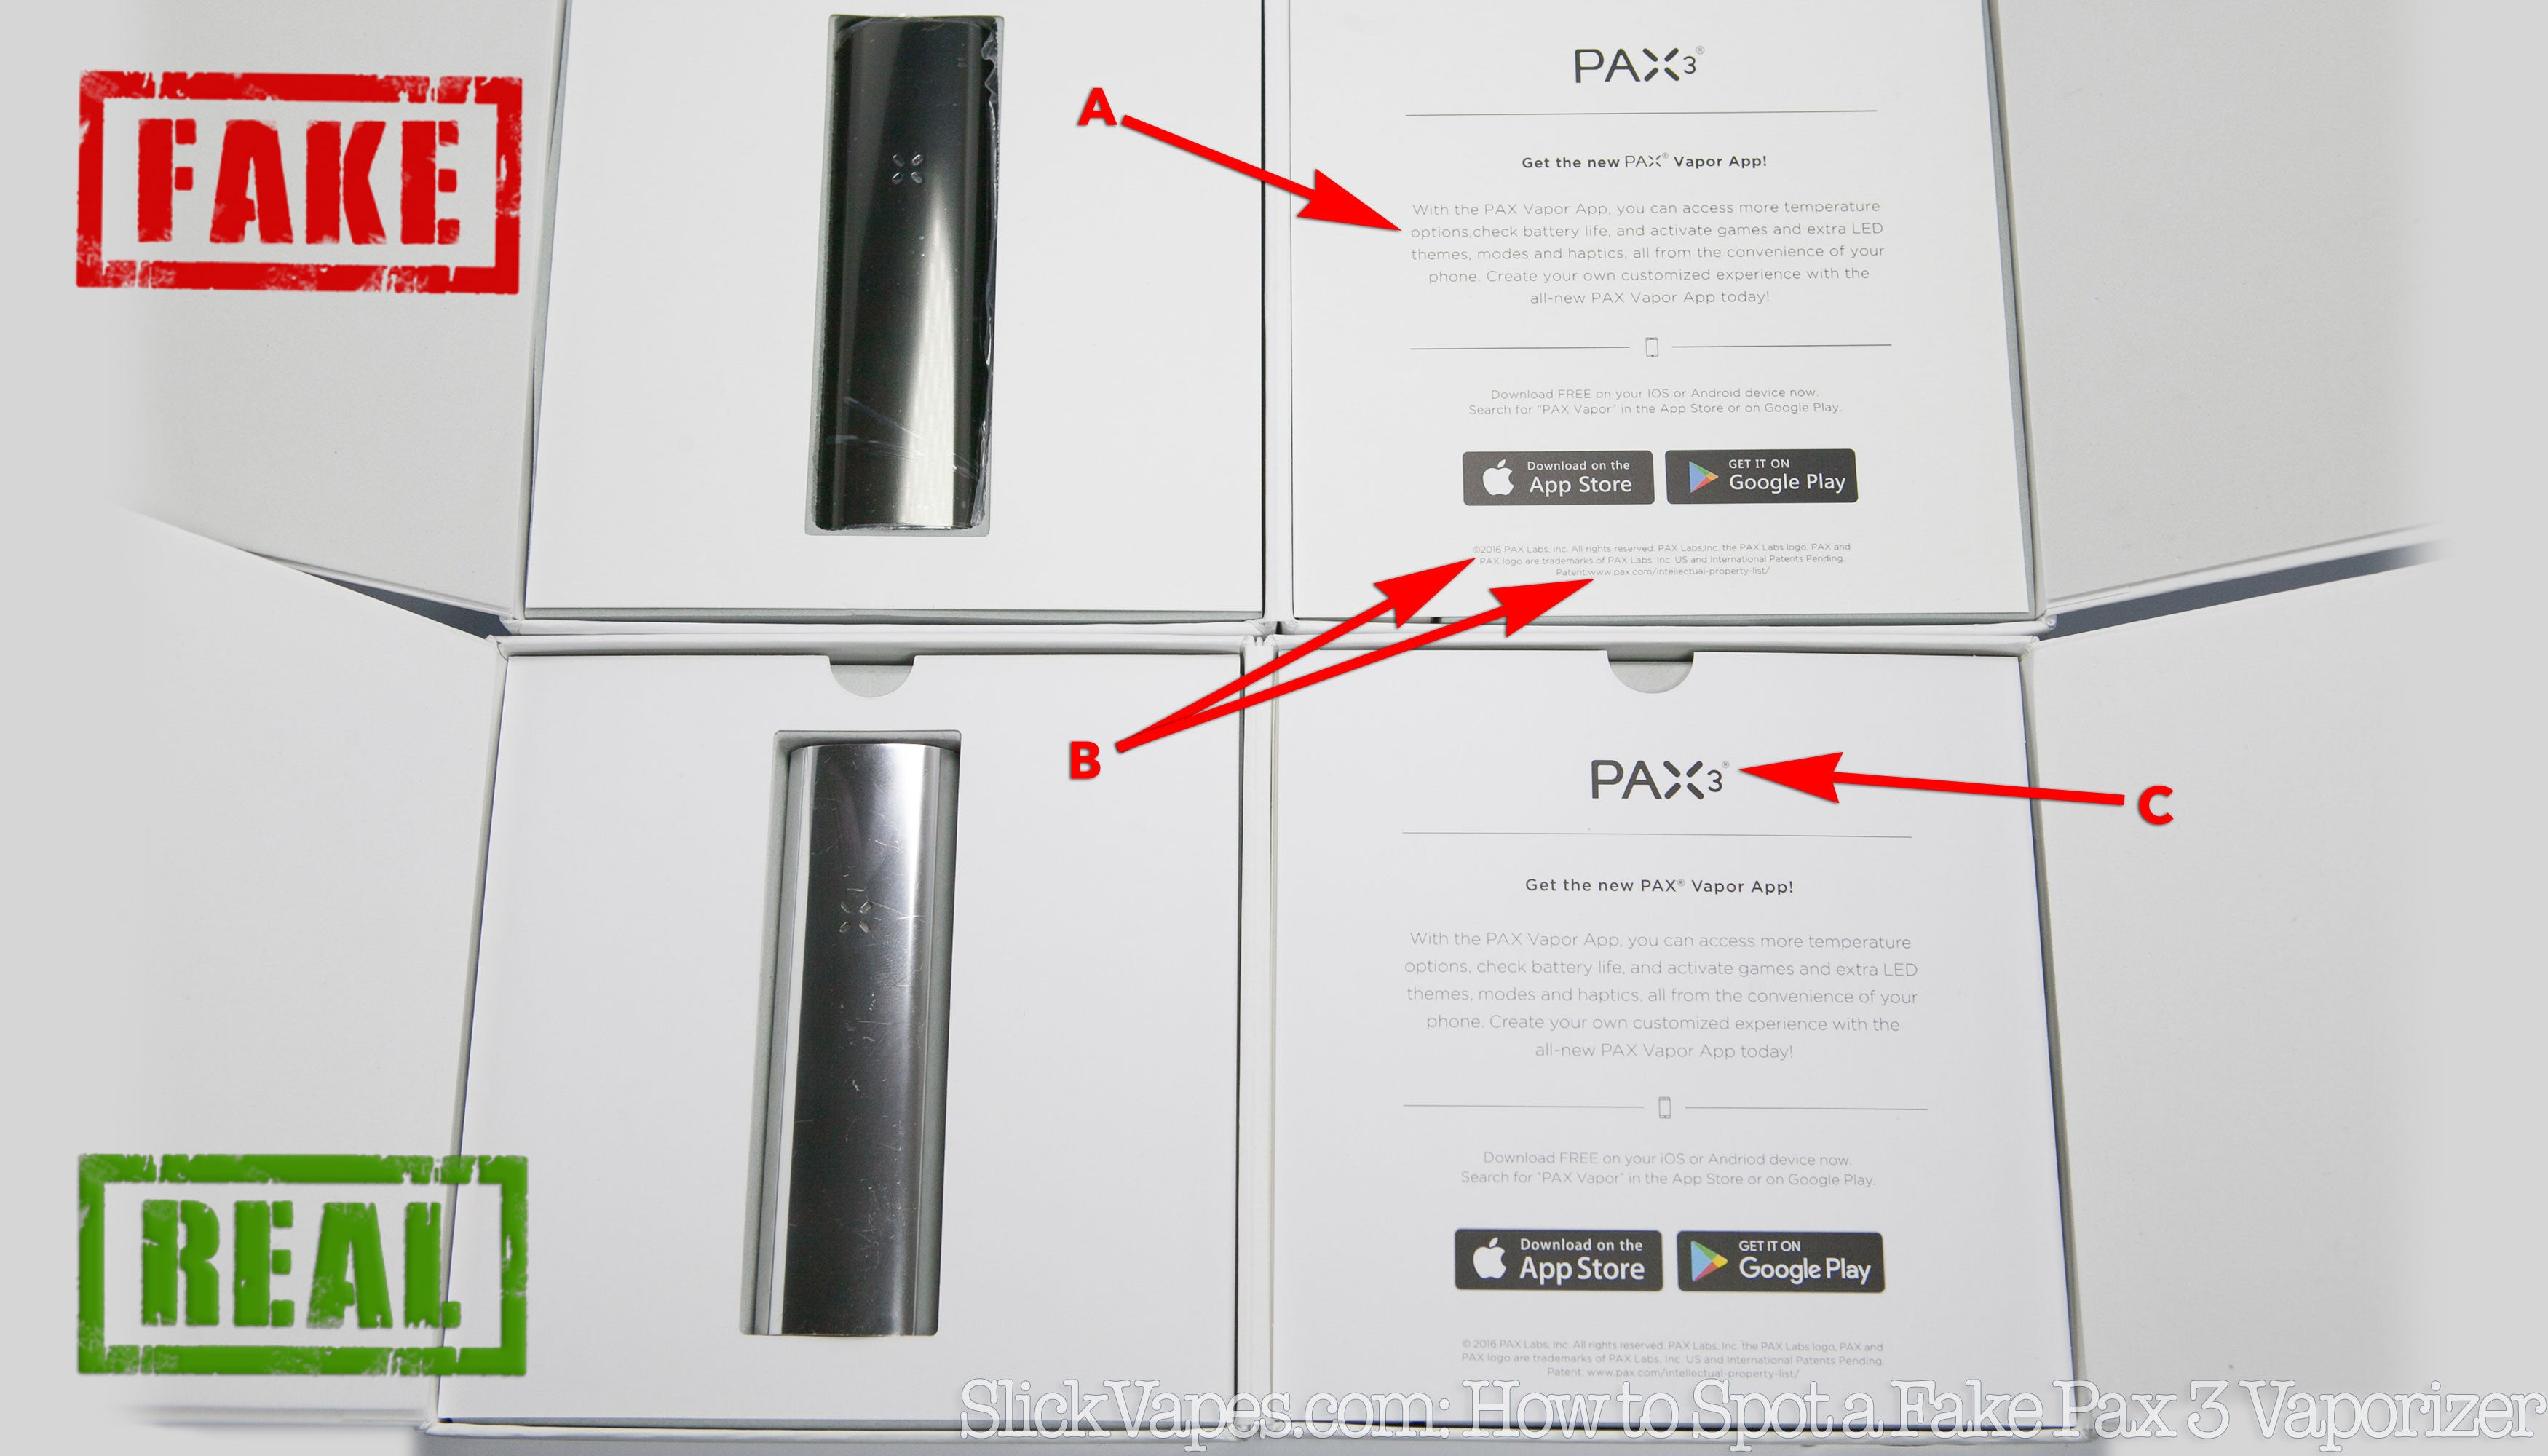 23 Ways to Spot a Fake PAX 3 Vaporizer! Is My Pax Counterfeit